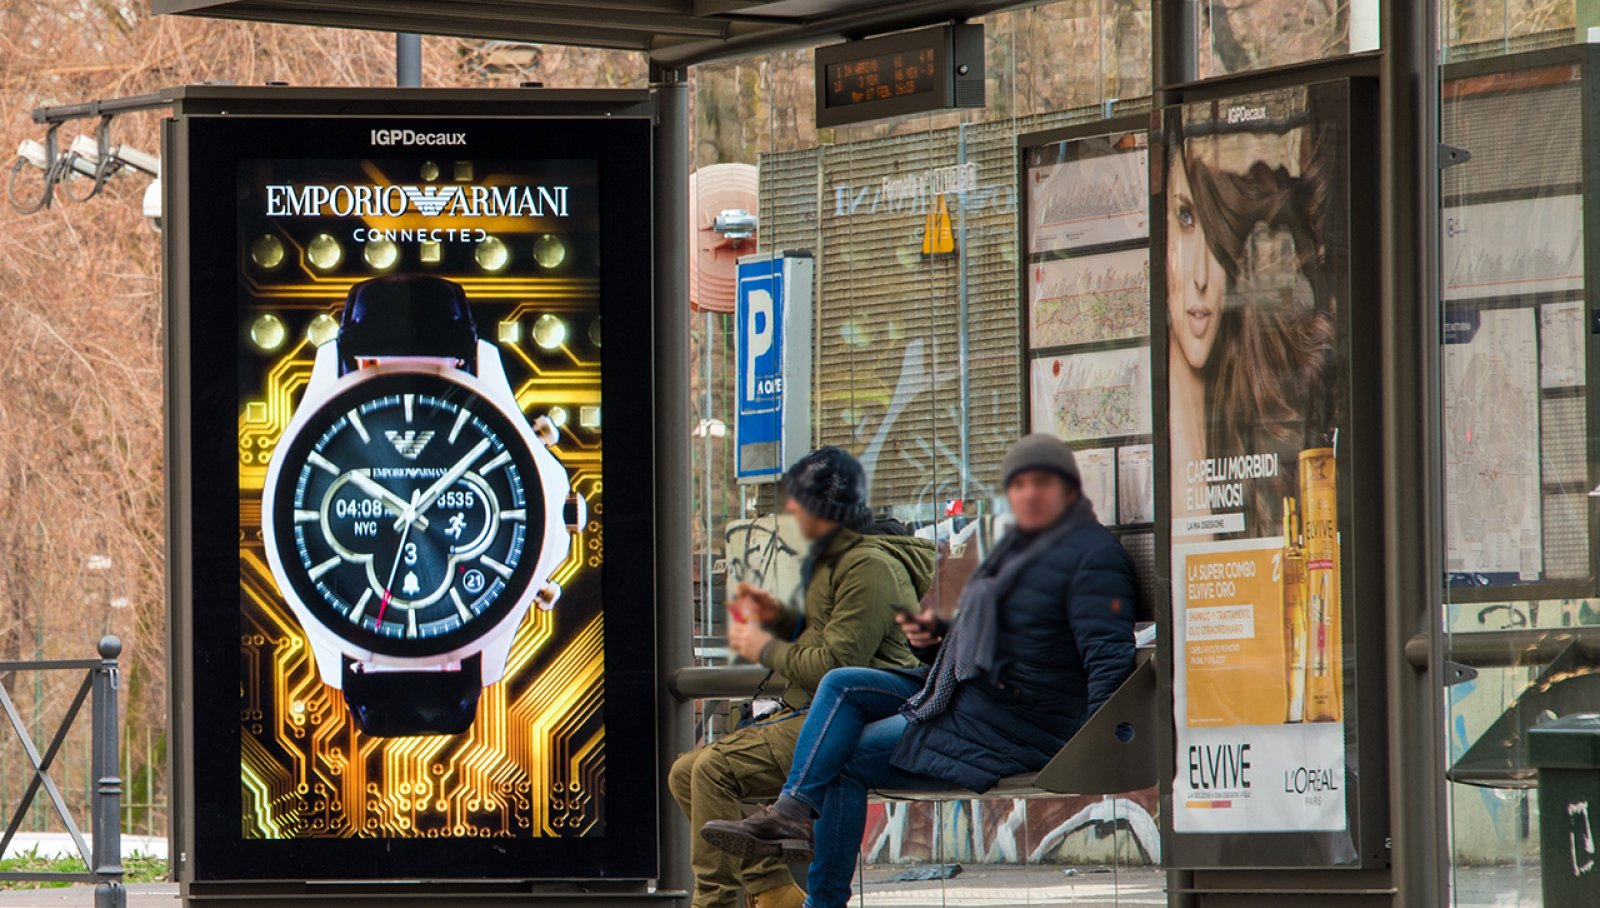 Dooh advertising IGPDecaux pensiline digitali per Armani a Milano